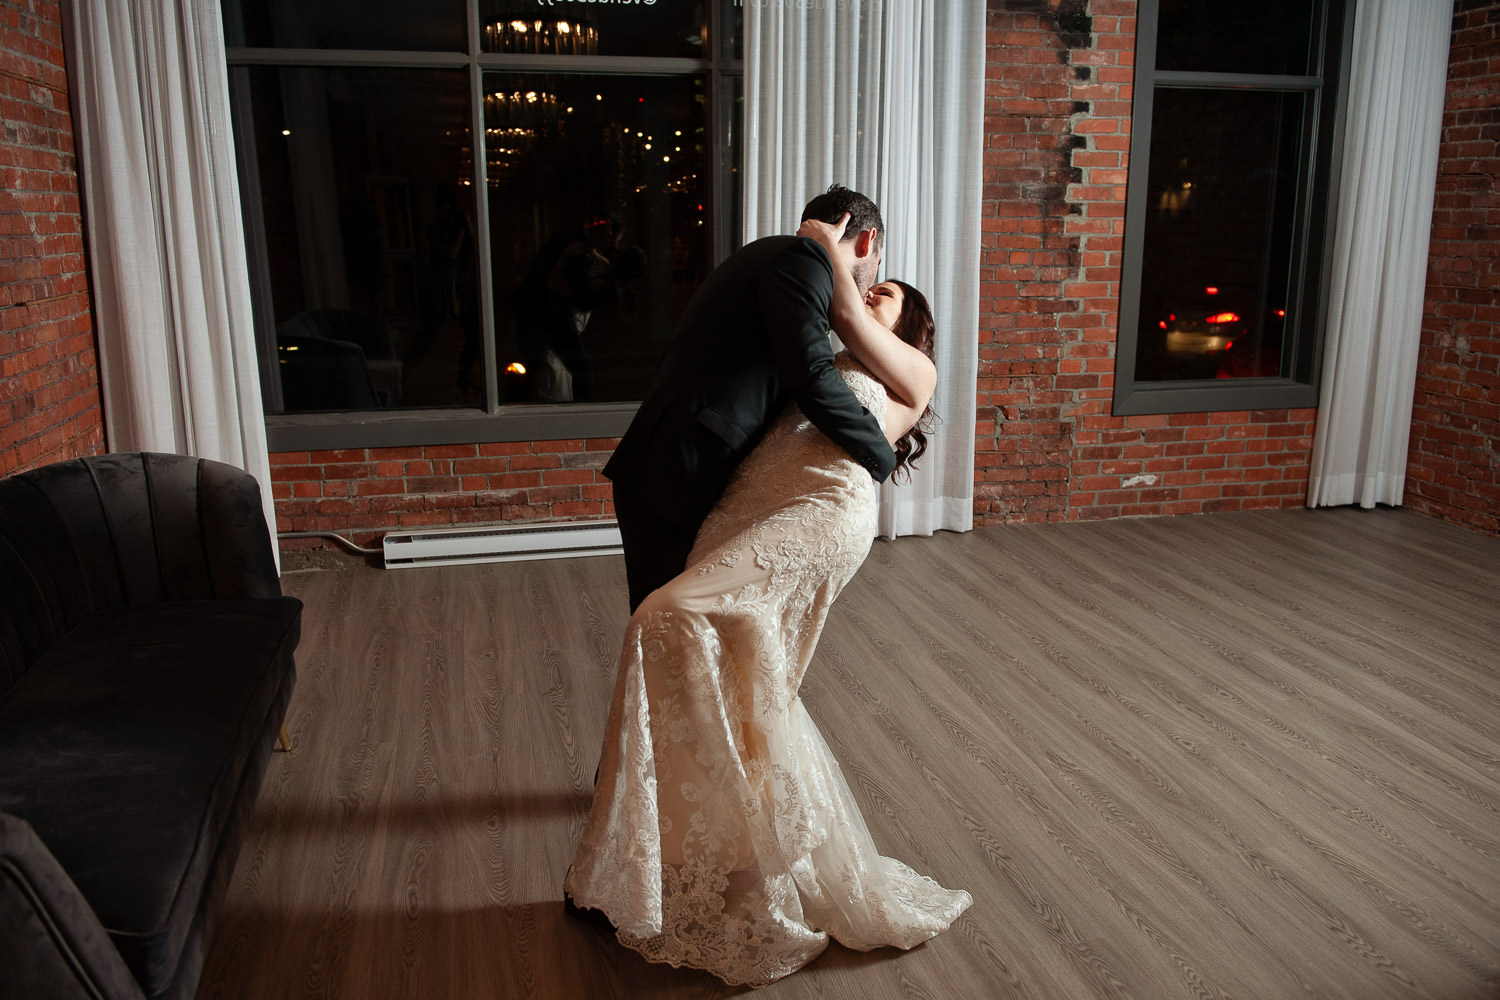 bride and groom during their first dance at Venue 308 captured by Tara Whittaker Photography